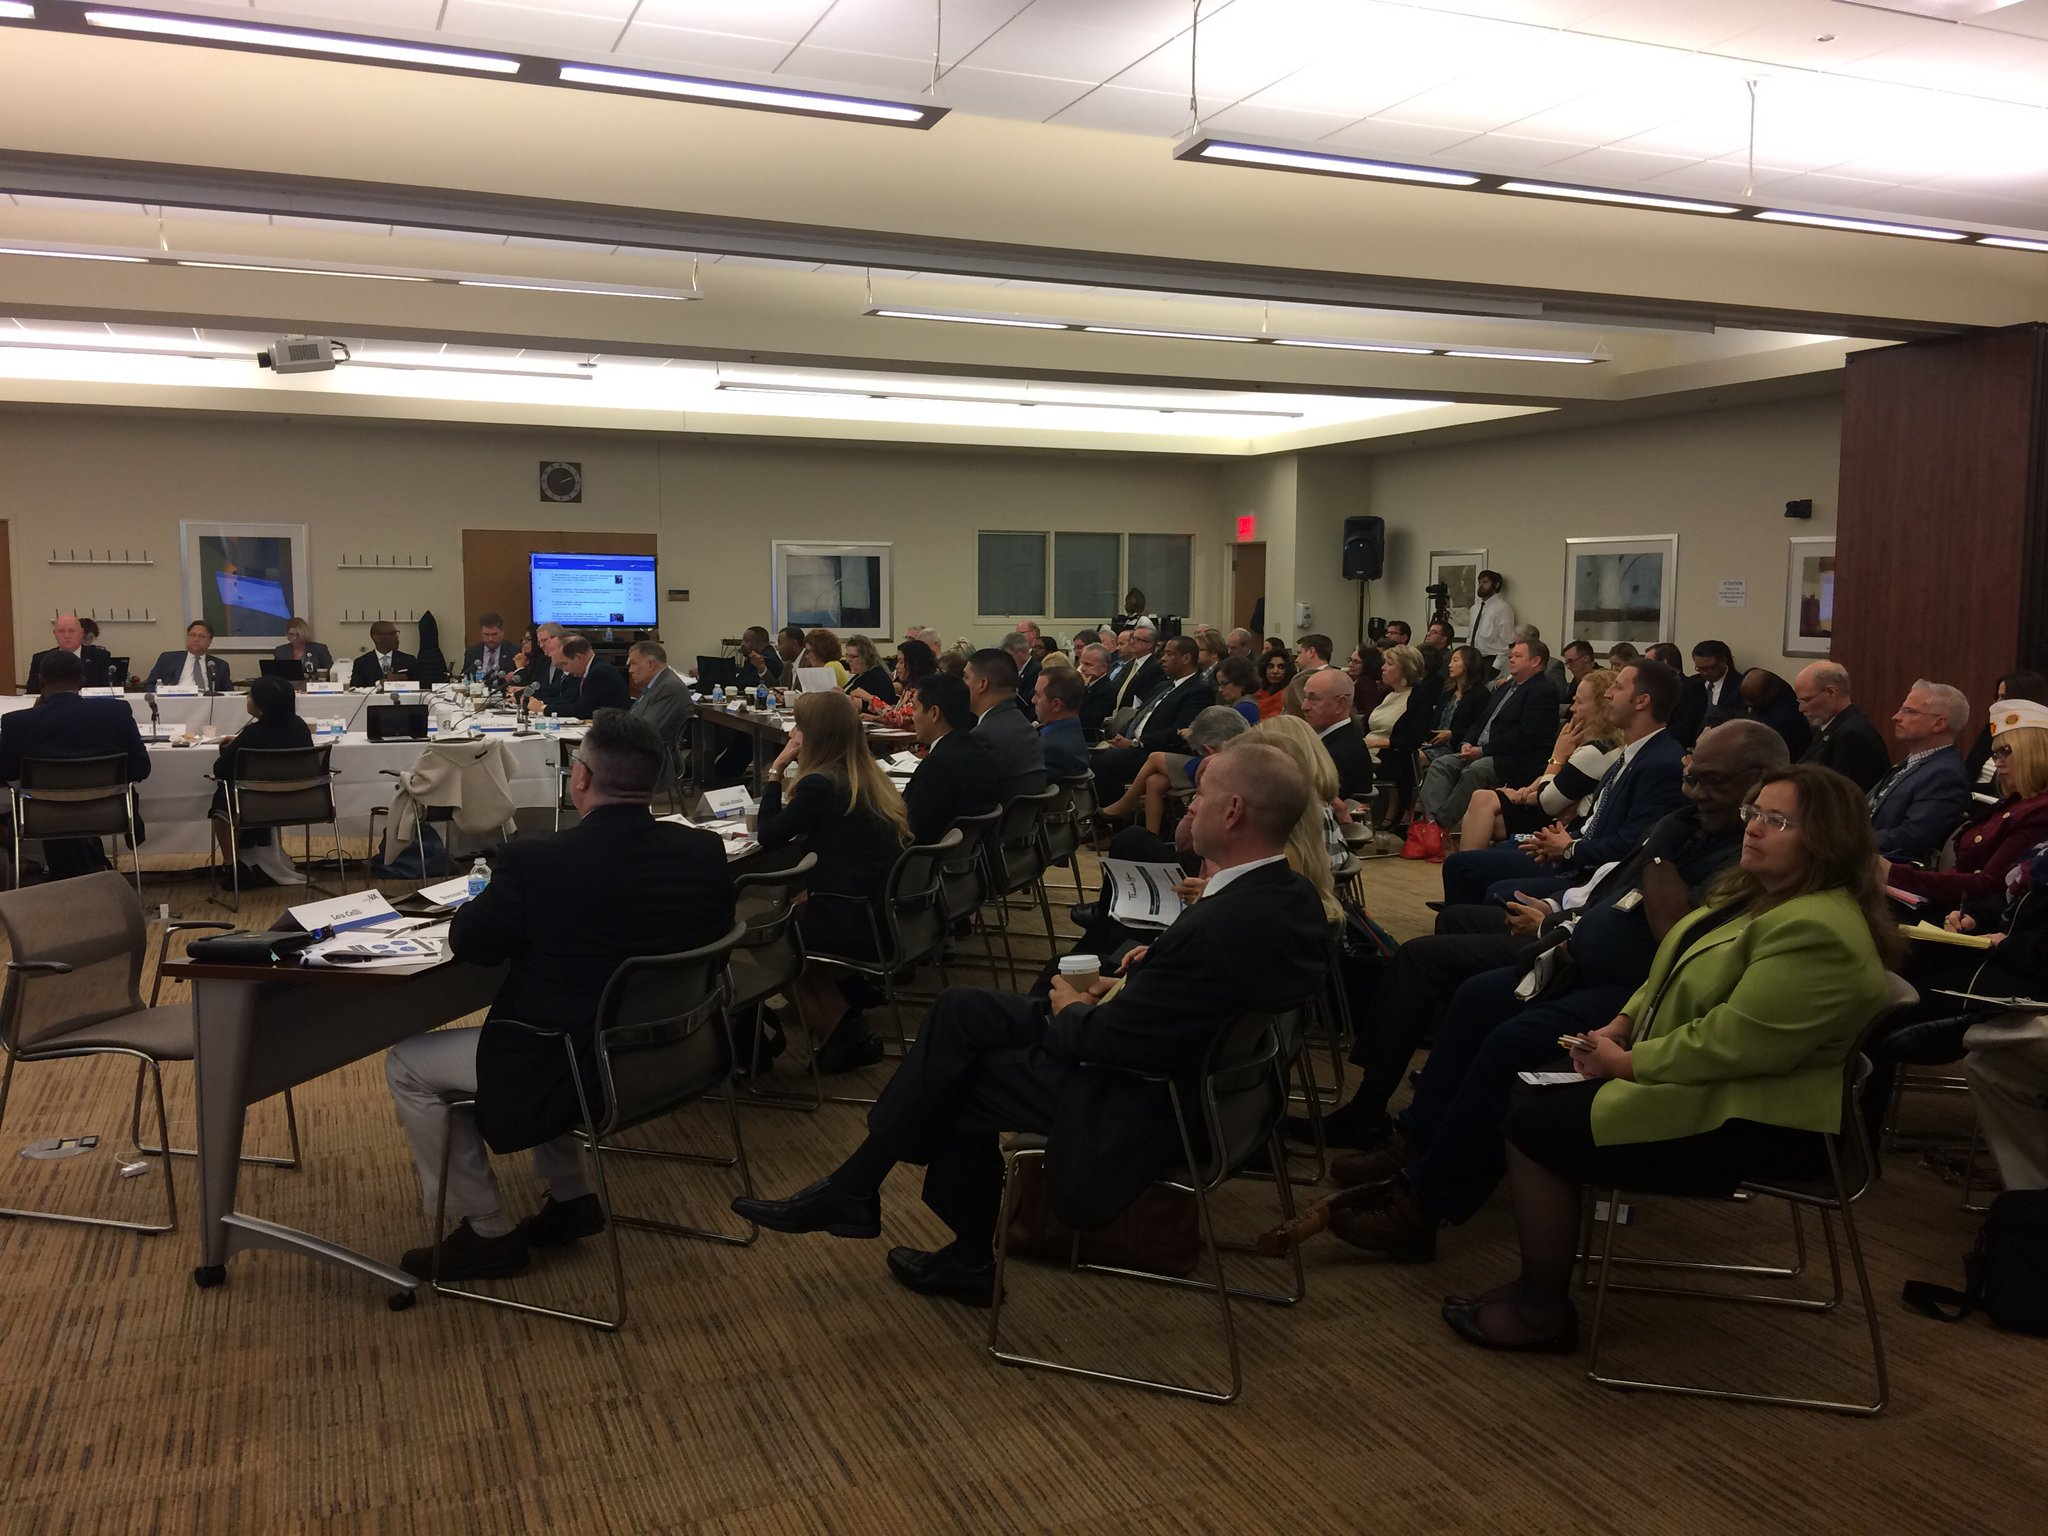 A full house for part 2 of the first day of the MyVA Advisory Committee meeting at VA Pittsburgh #MyVASitRep https://t.co/mJkJGBfEbH